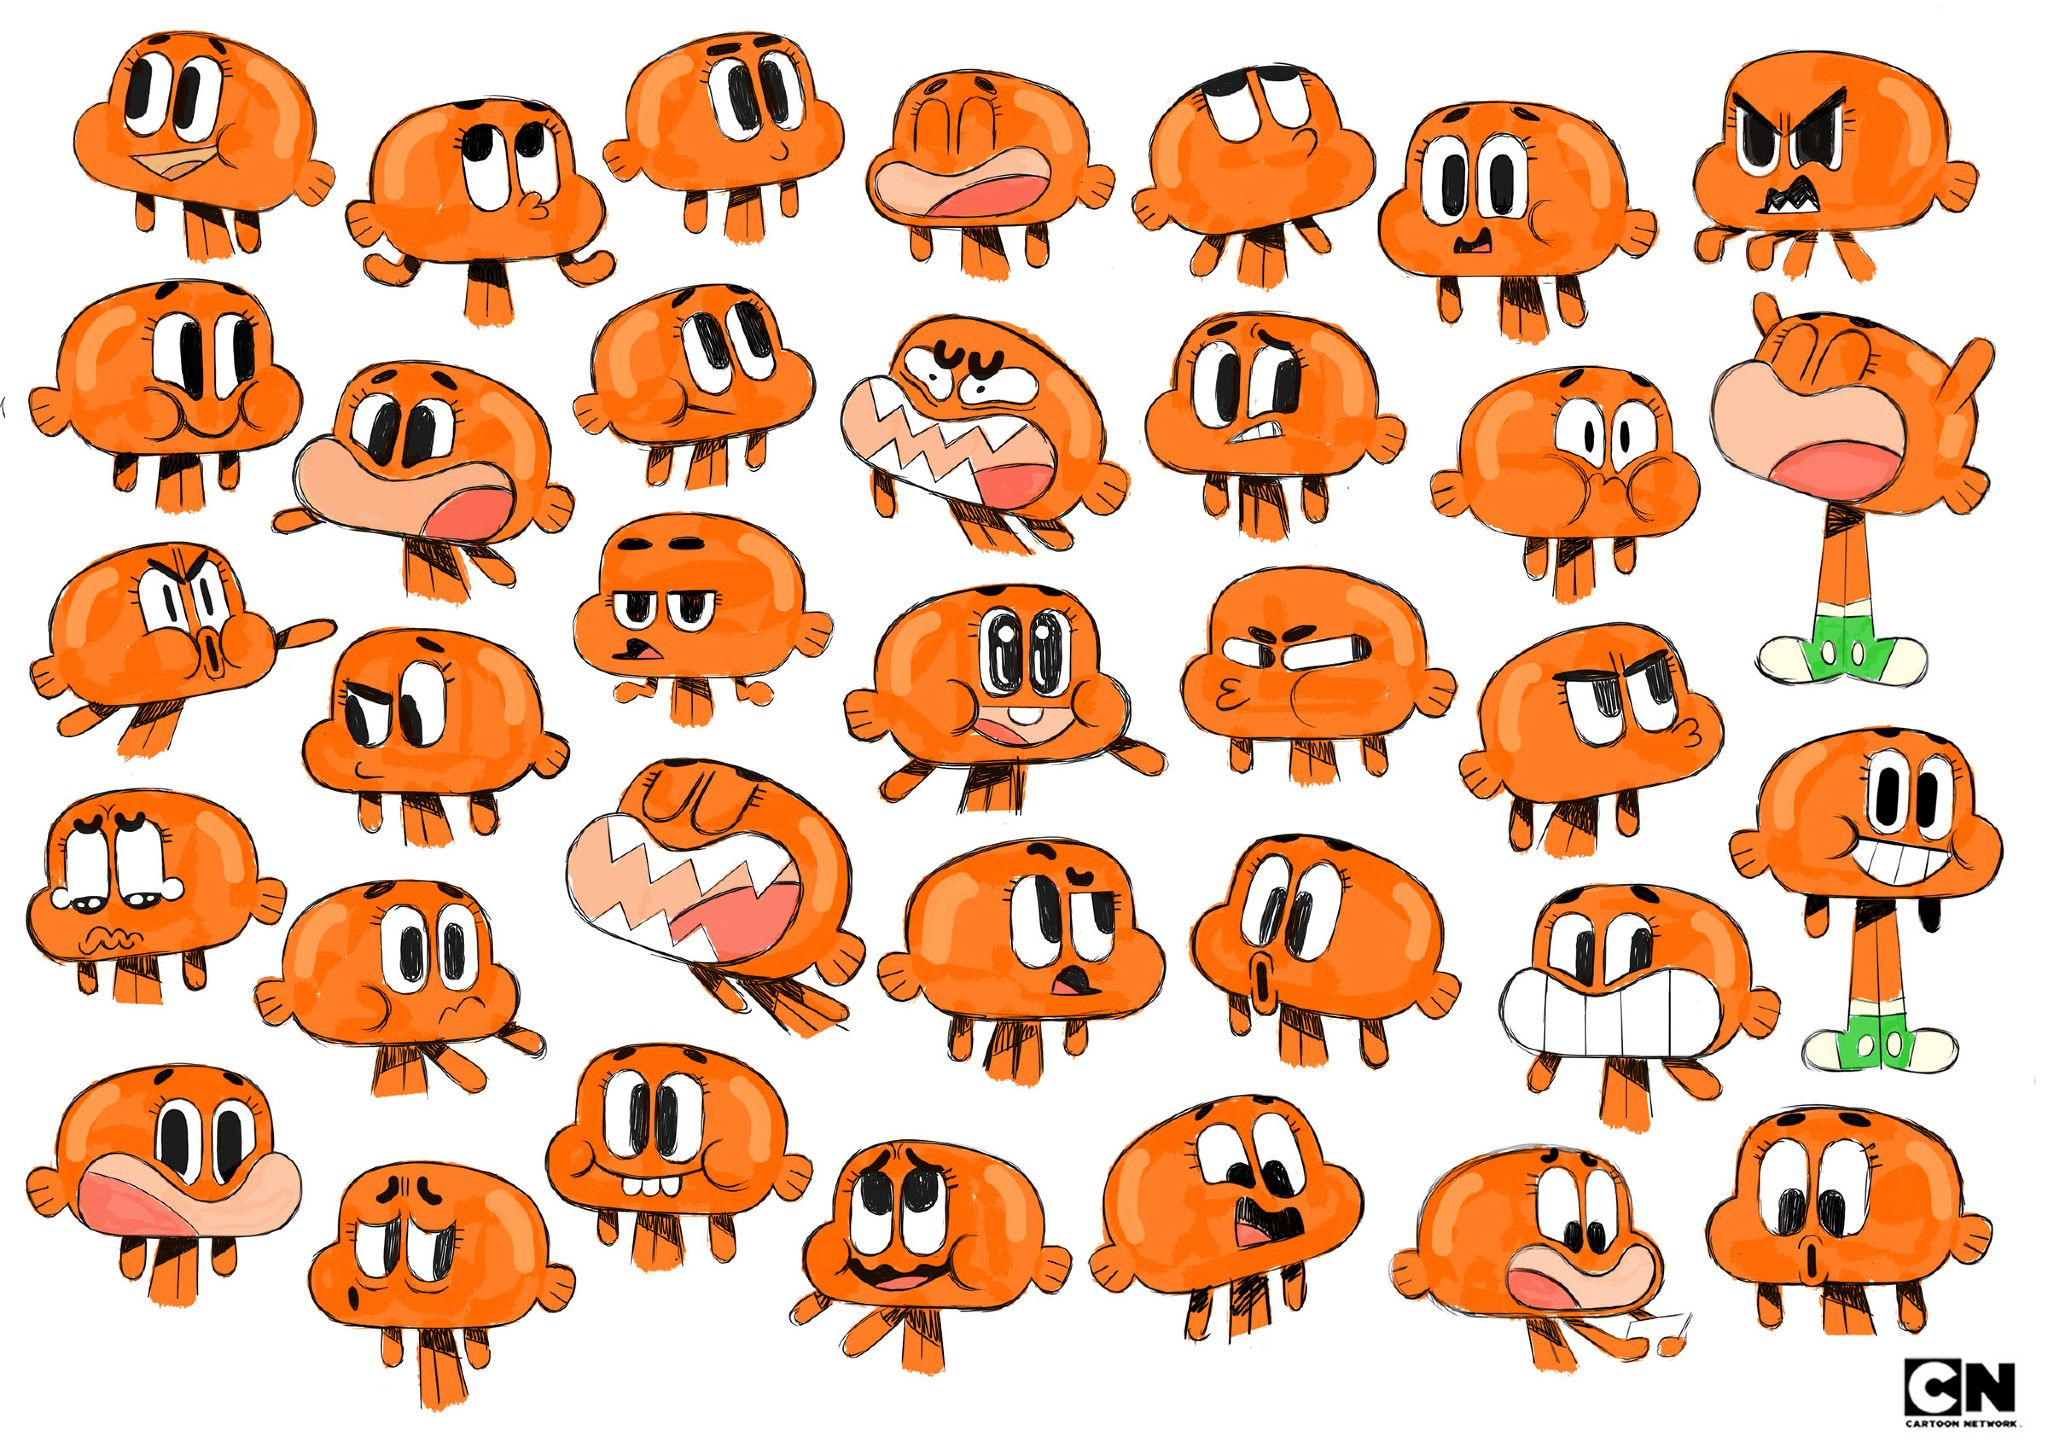 The Amazing World Of Gumball Cartoon Network Virginie Kypriotis Character Design Freelance Designer The Amazing World Of Gumball World Of Gumball Gumball